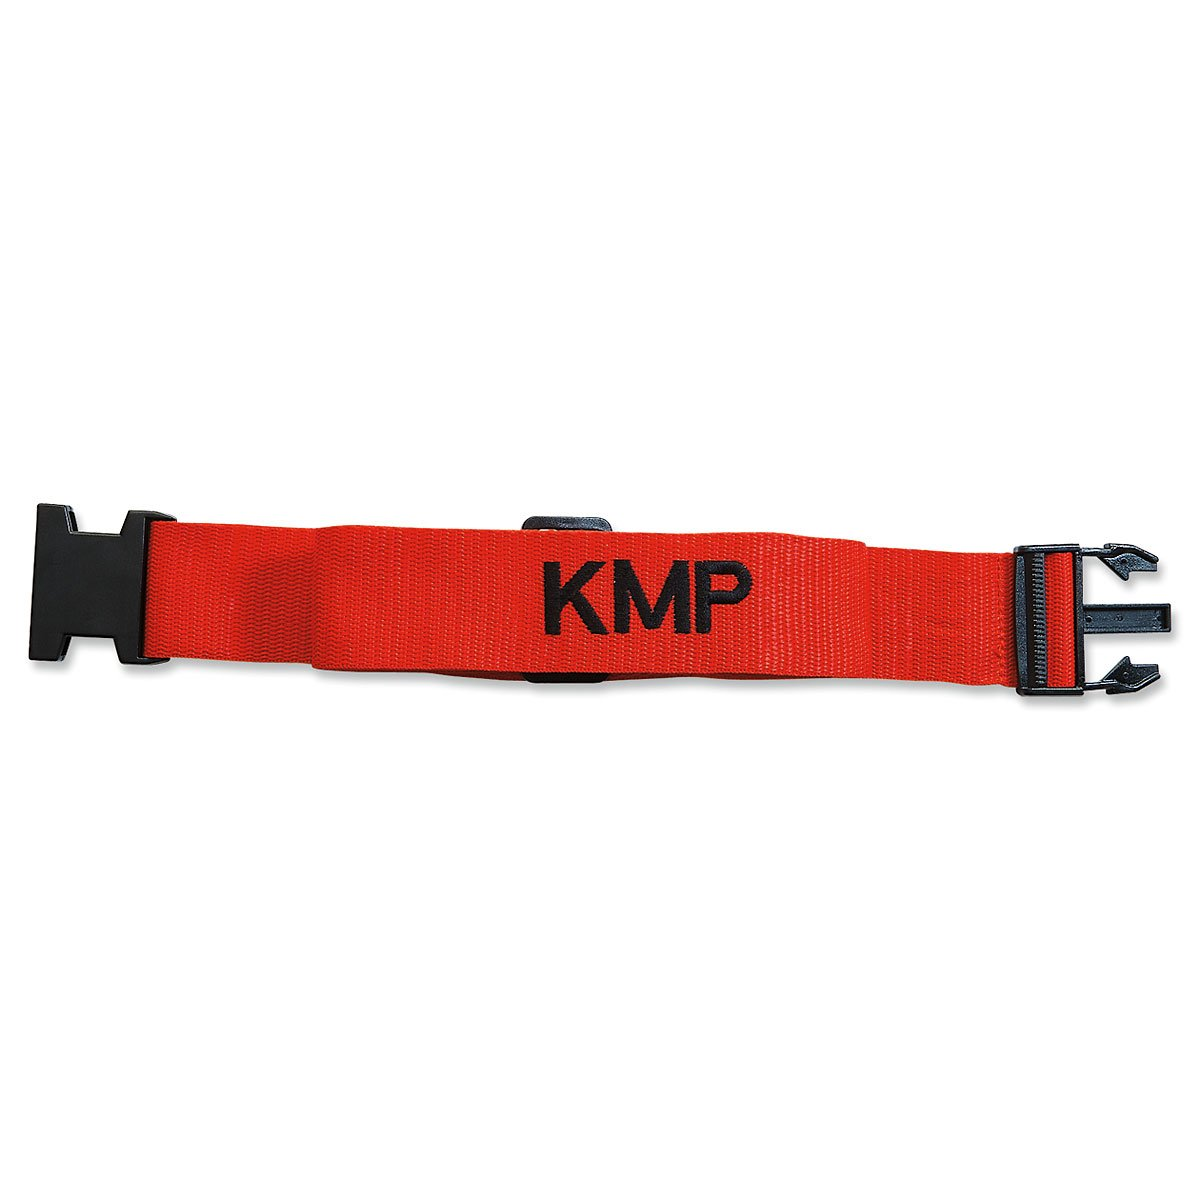 Personalized Red Luggage Strap - 2'' W woven strap adjusts from 35'' to 64'' L by Lillian Vernon